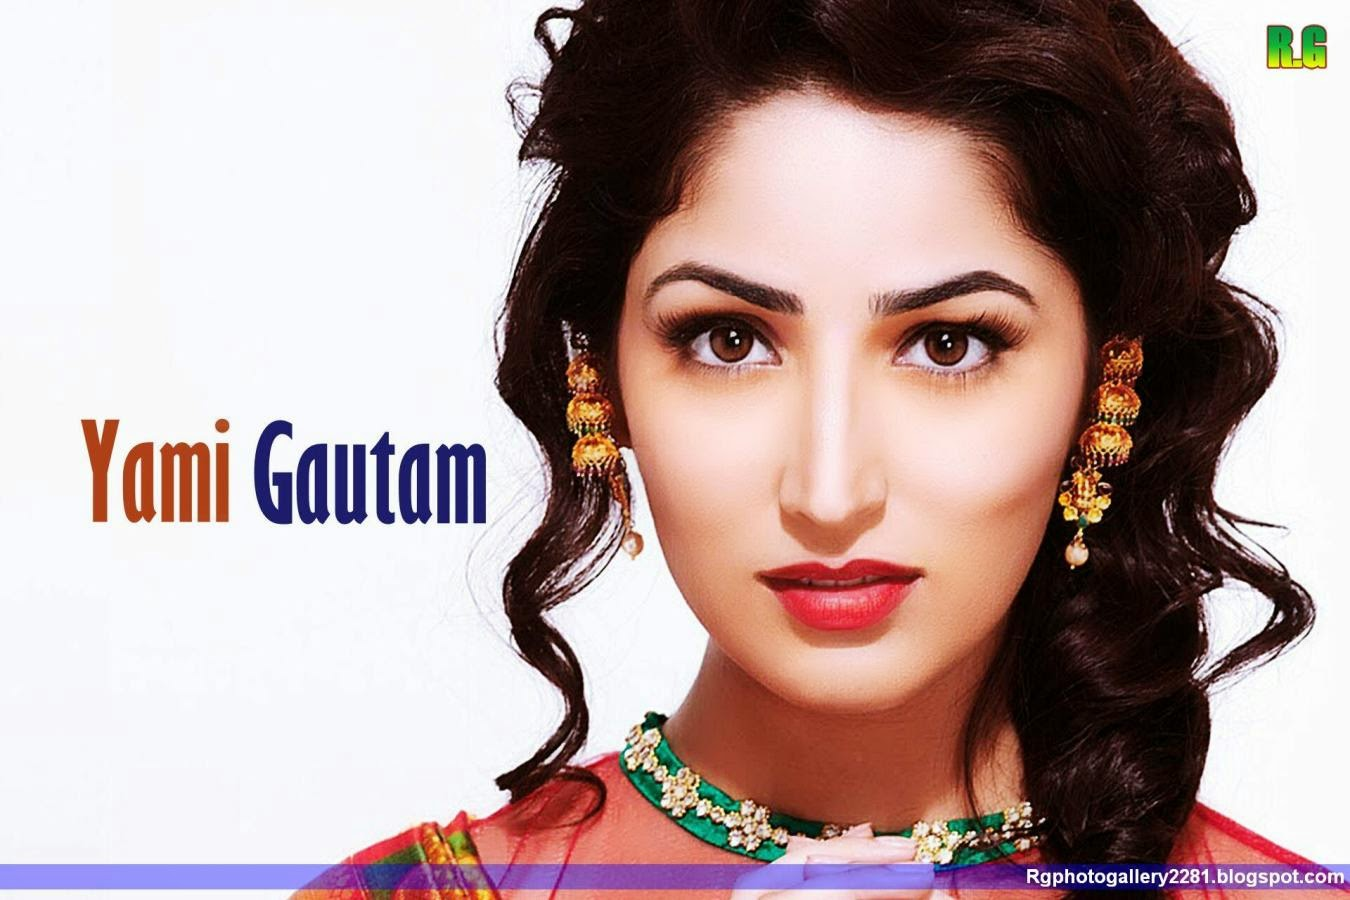 yami gautam wallpaper - Rg.Photo Gallery